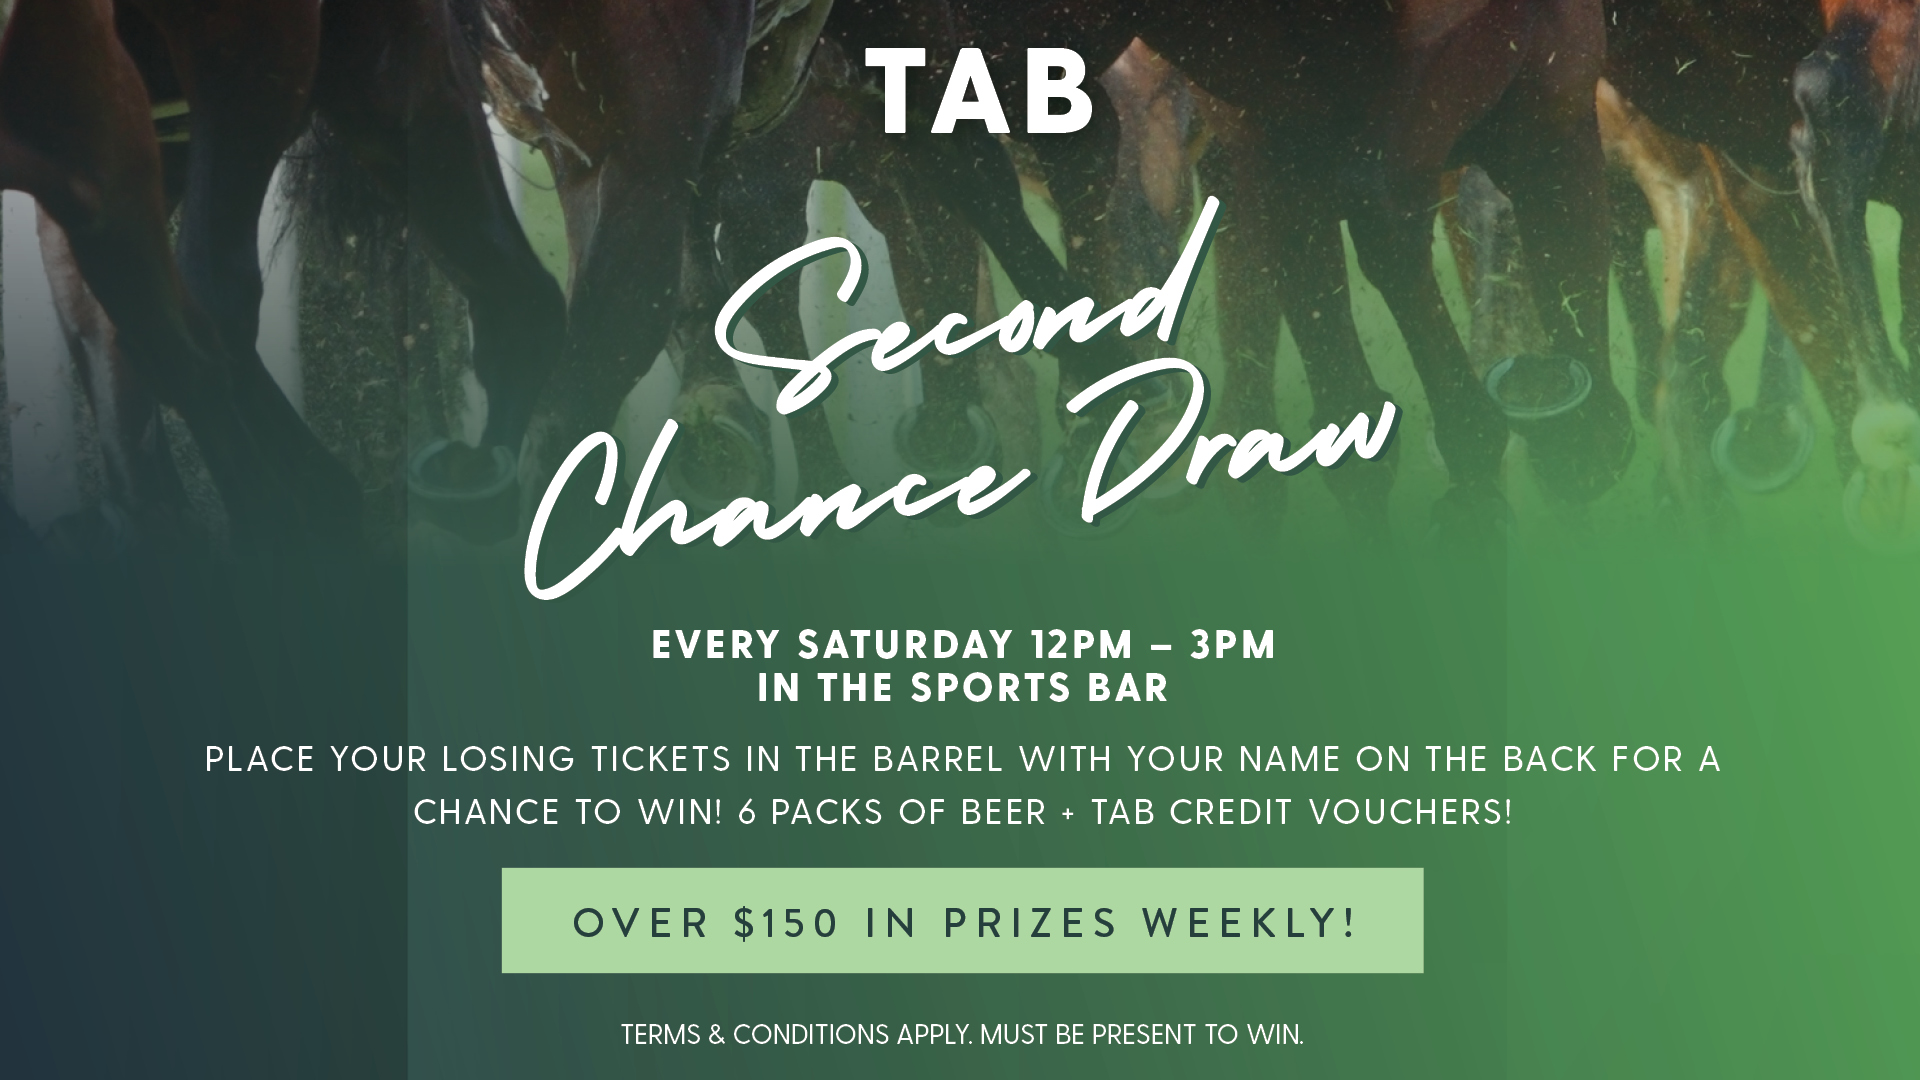 TAB Second Chance Draw at Gympie RSL